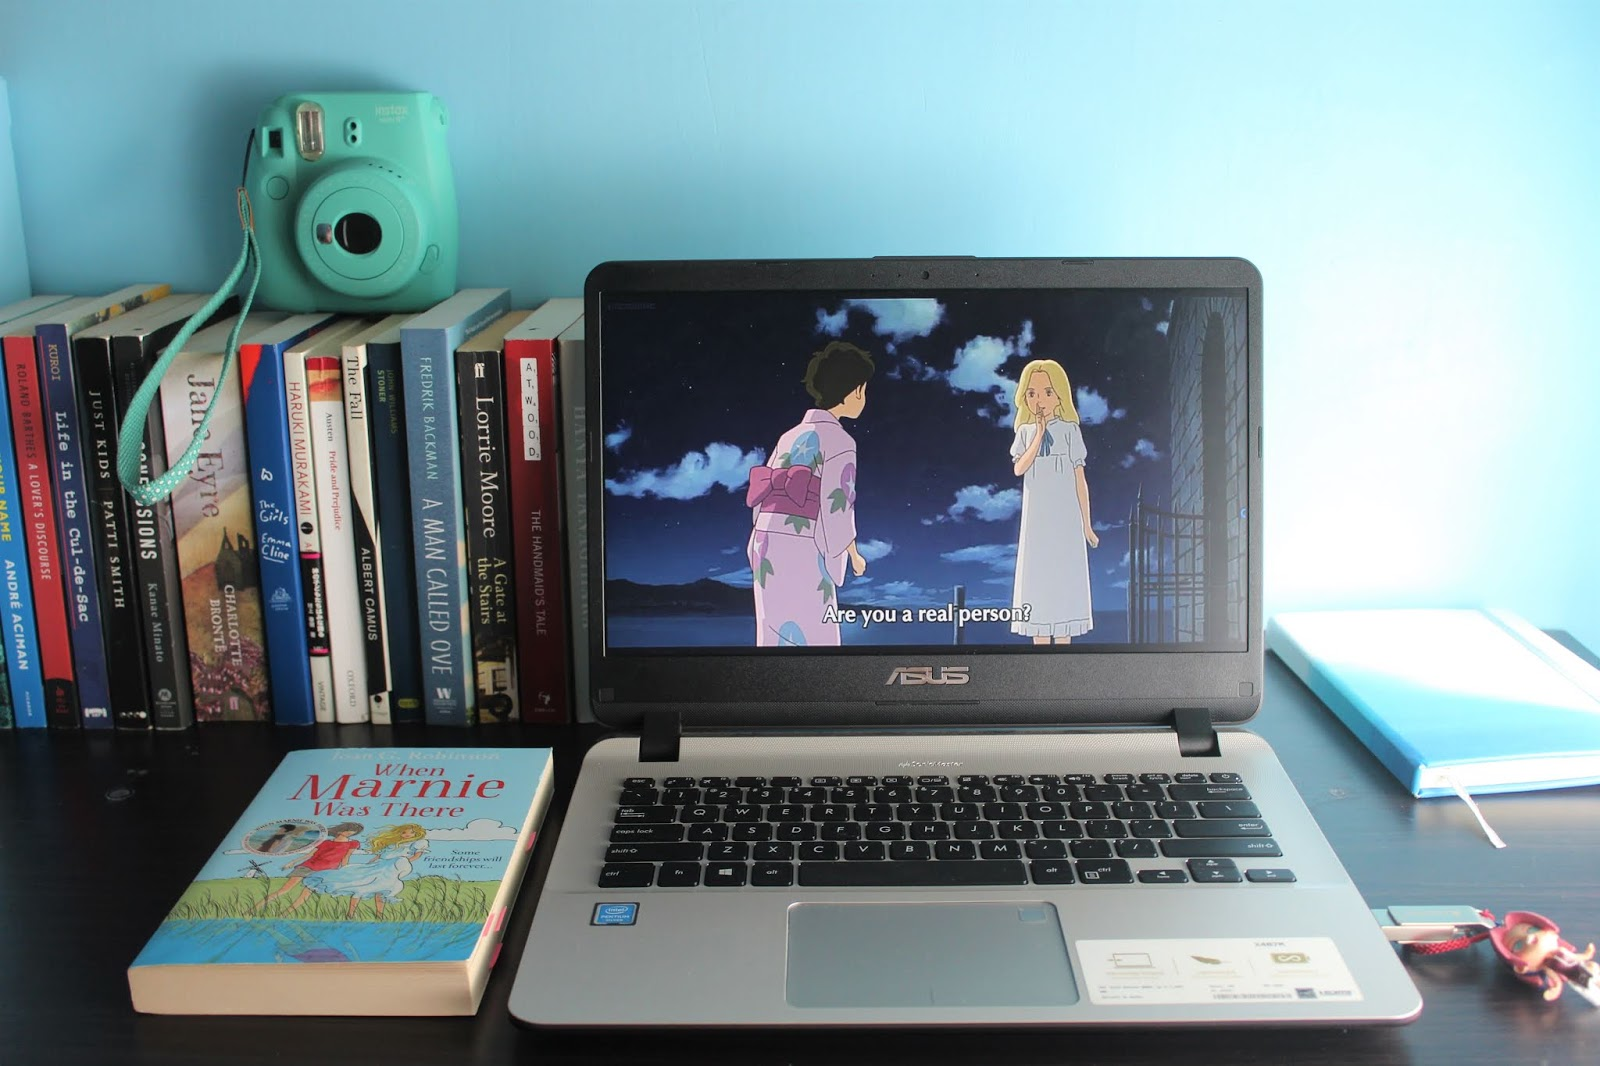 a laptop and a book on the table